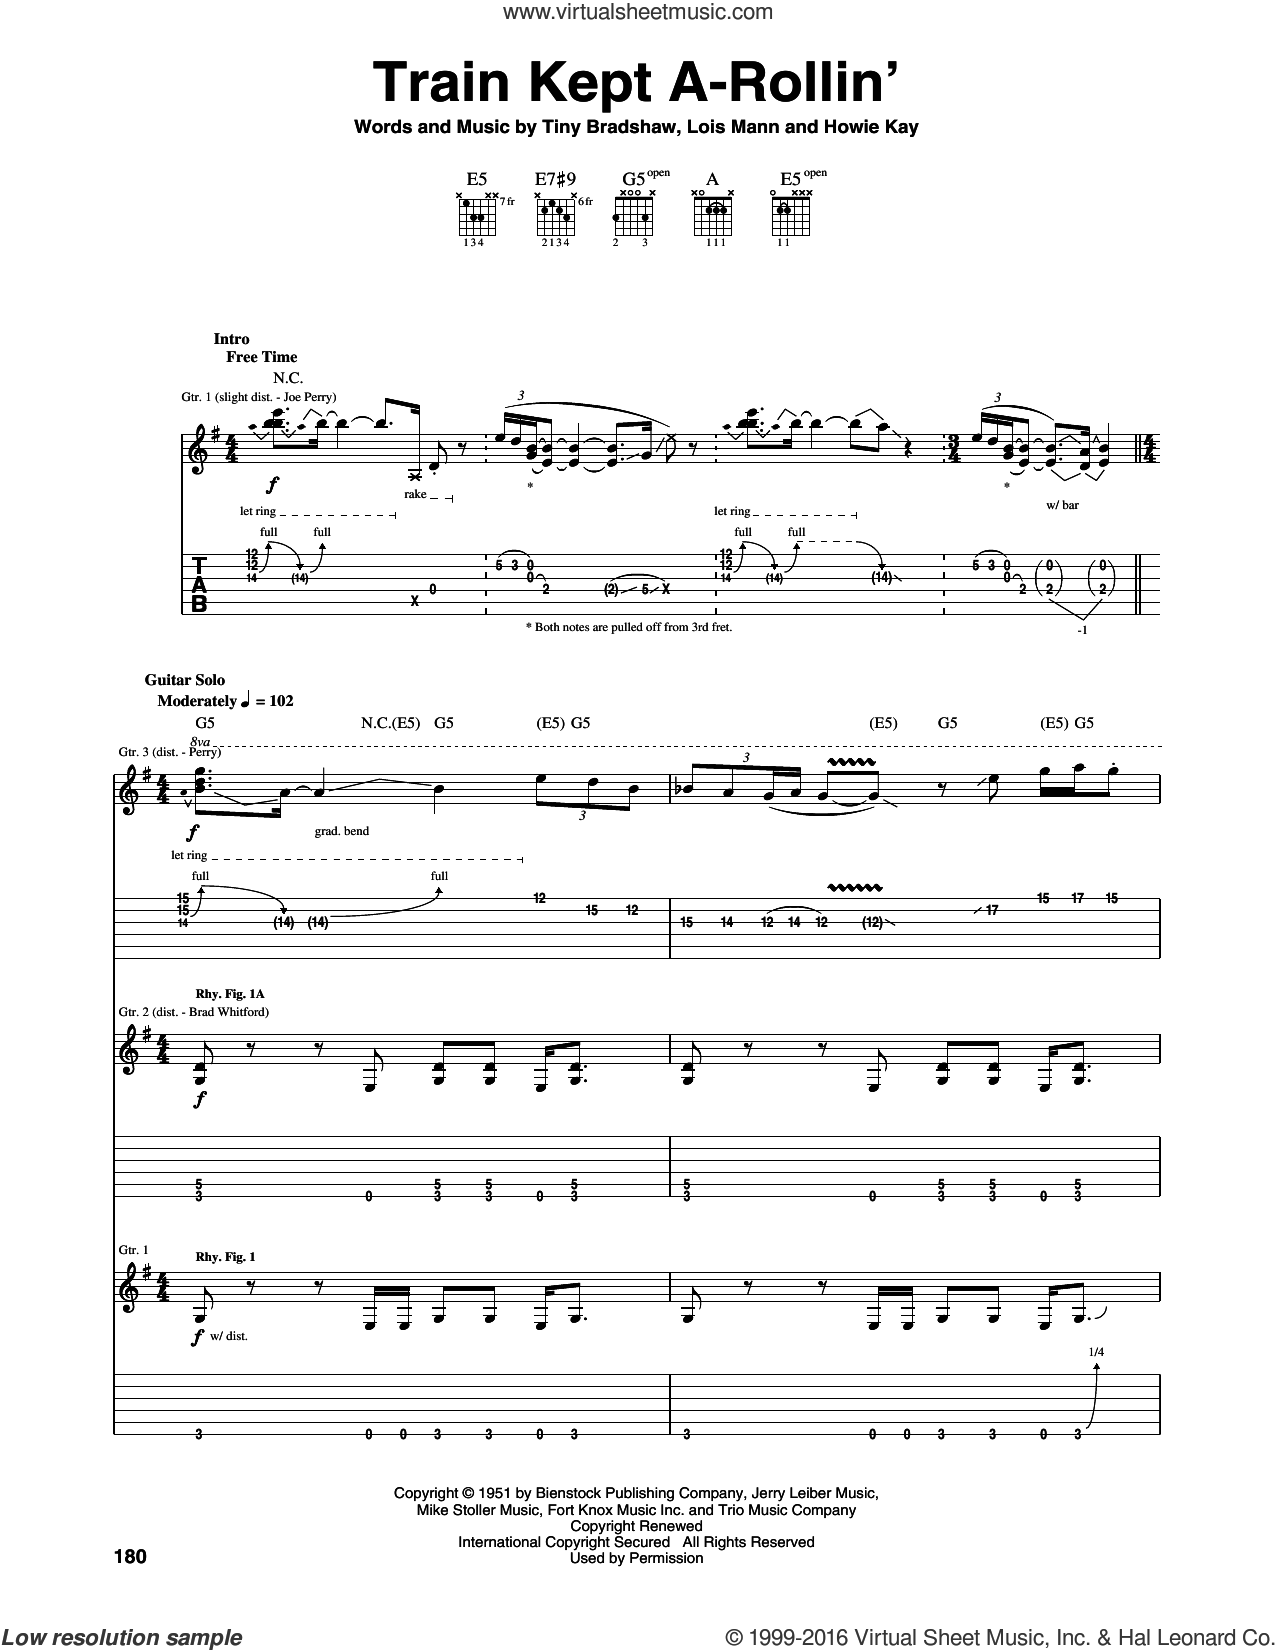 Train Kept A-Rollin' sheet music for guitar (tablature) by Tiny Bradshaw